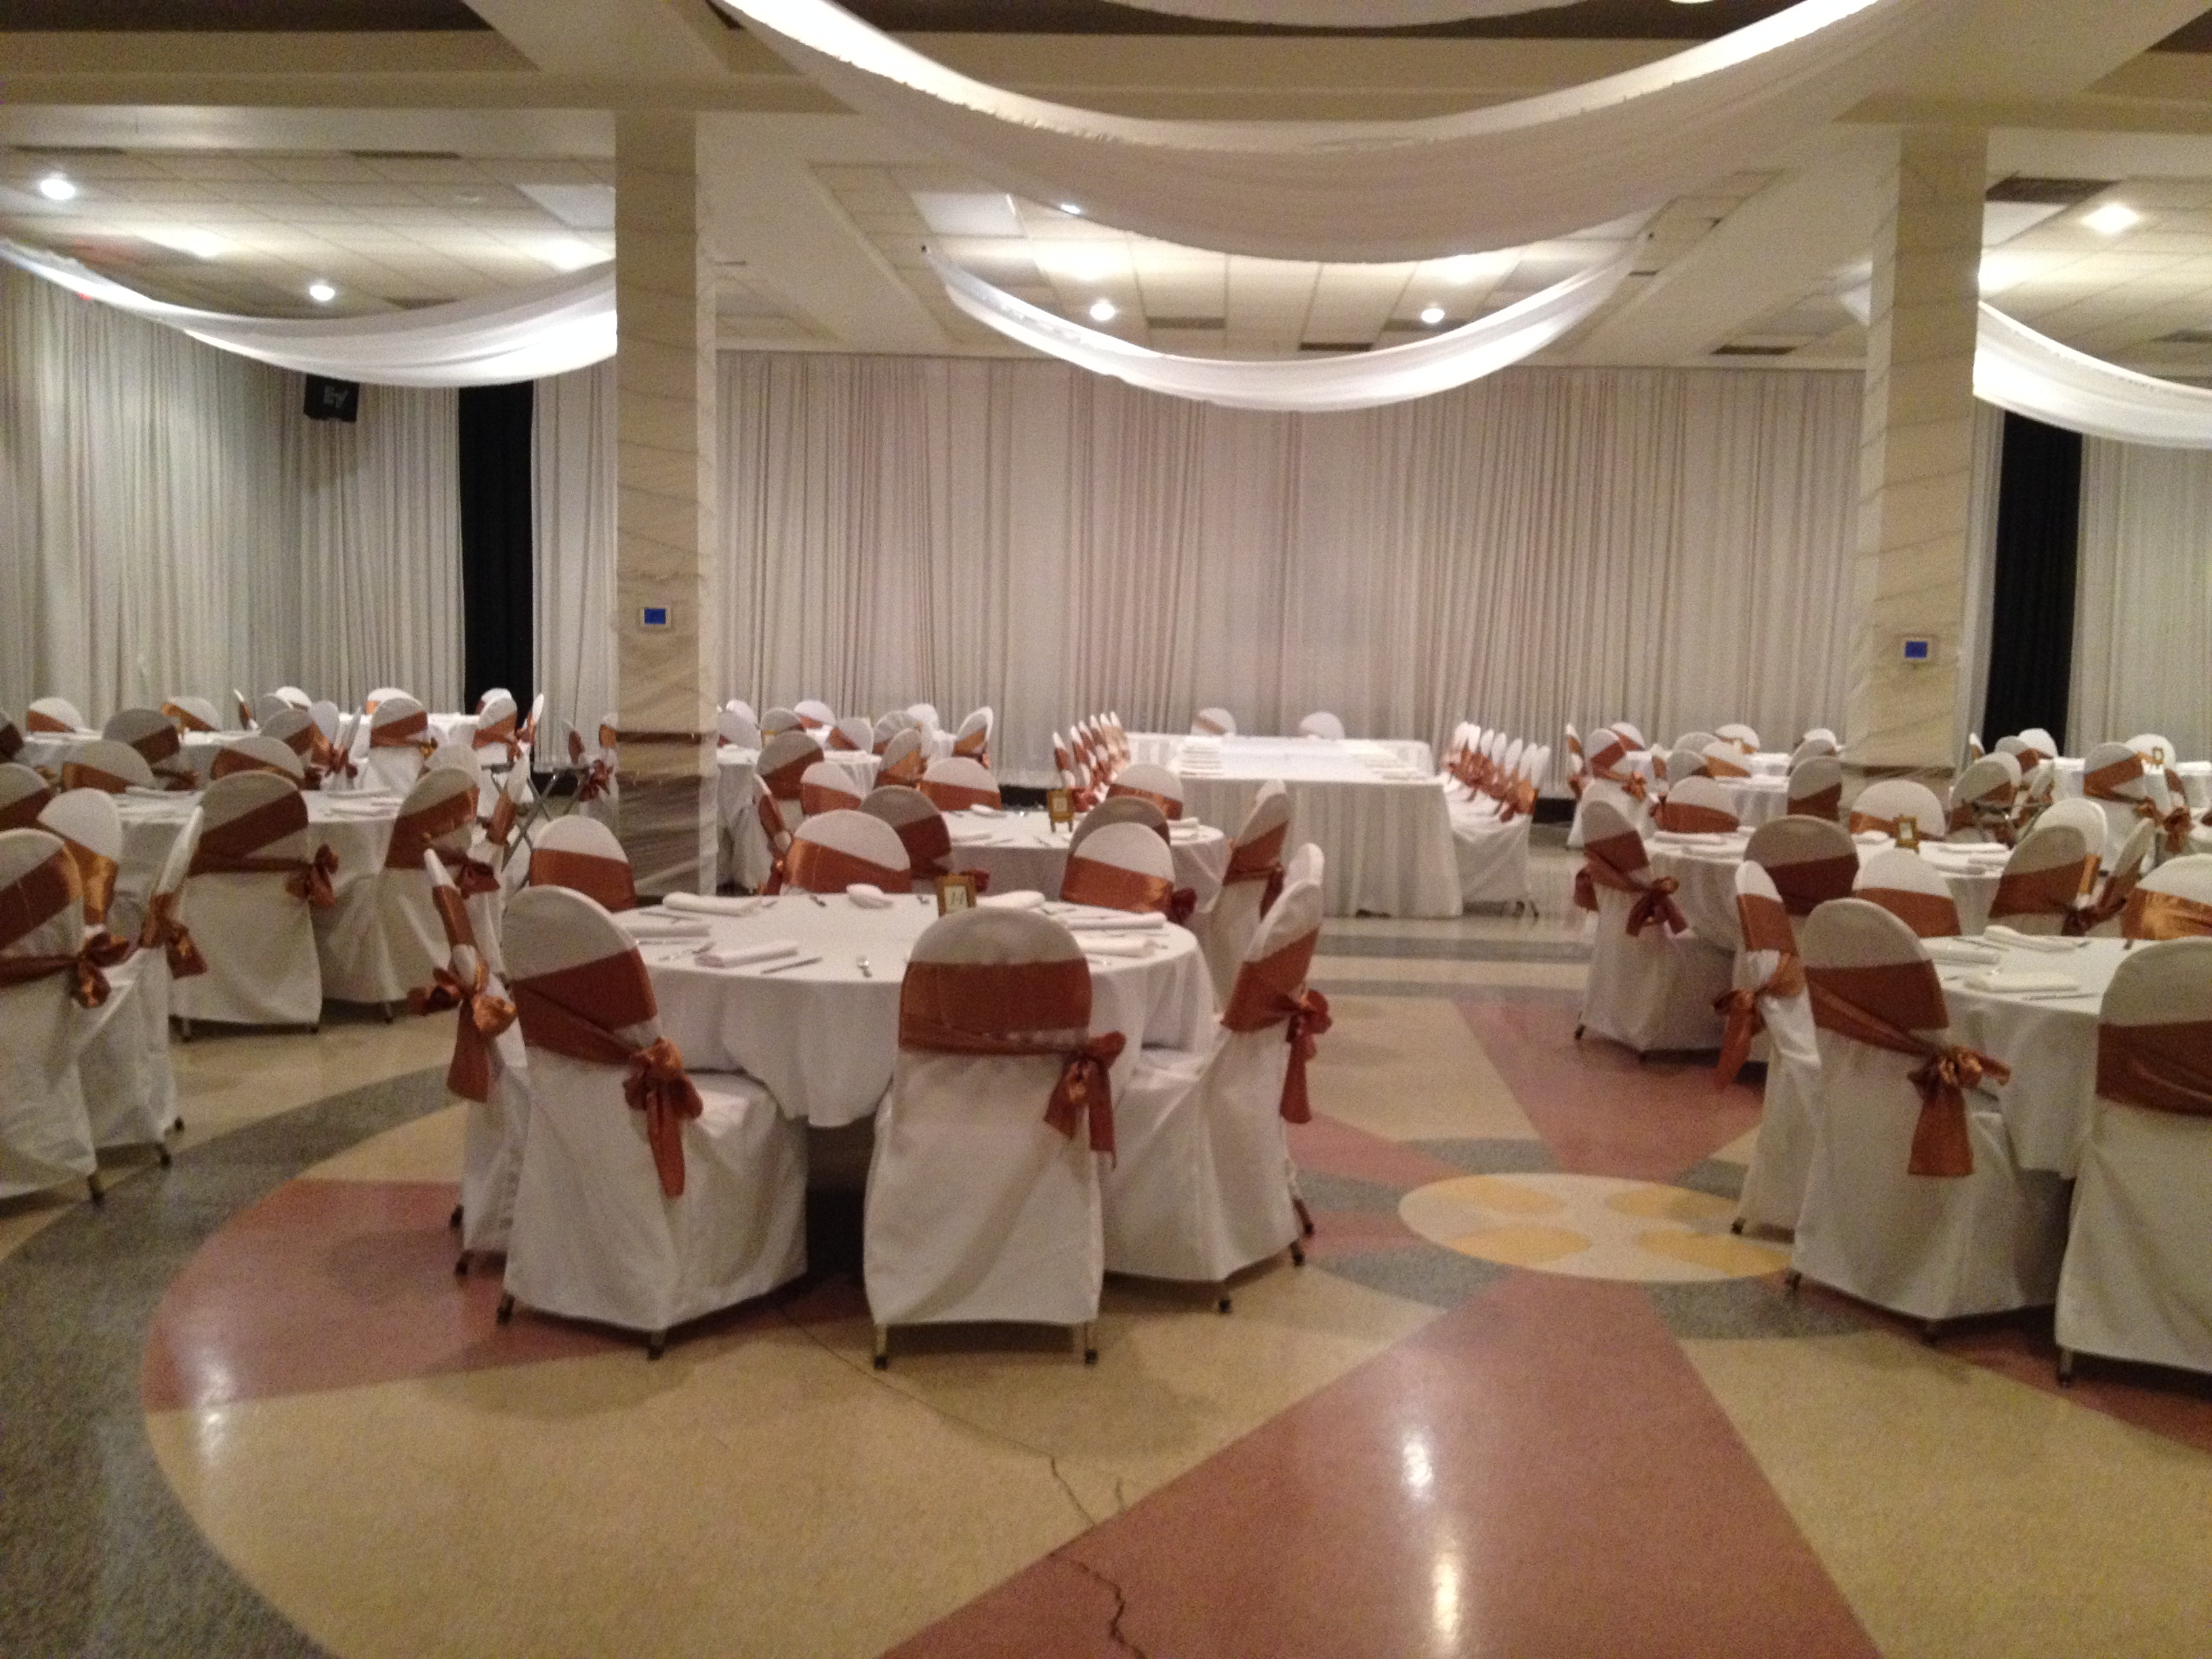 anna chair cover & wedding linens rental burnaby bc heywood wakefield chairs catering and off site events tbc